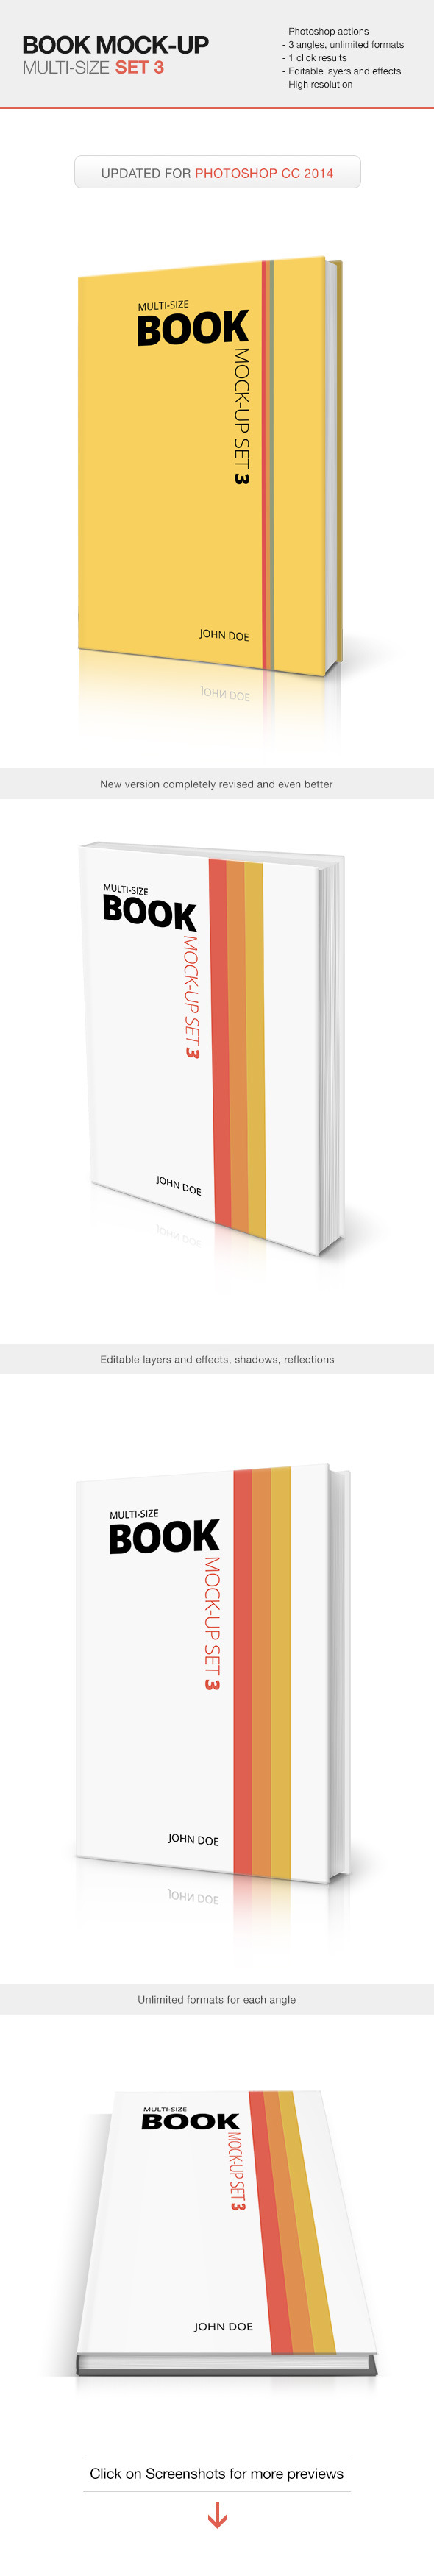 Multi-size Book Mockup - Set 3